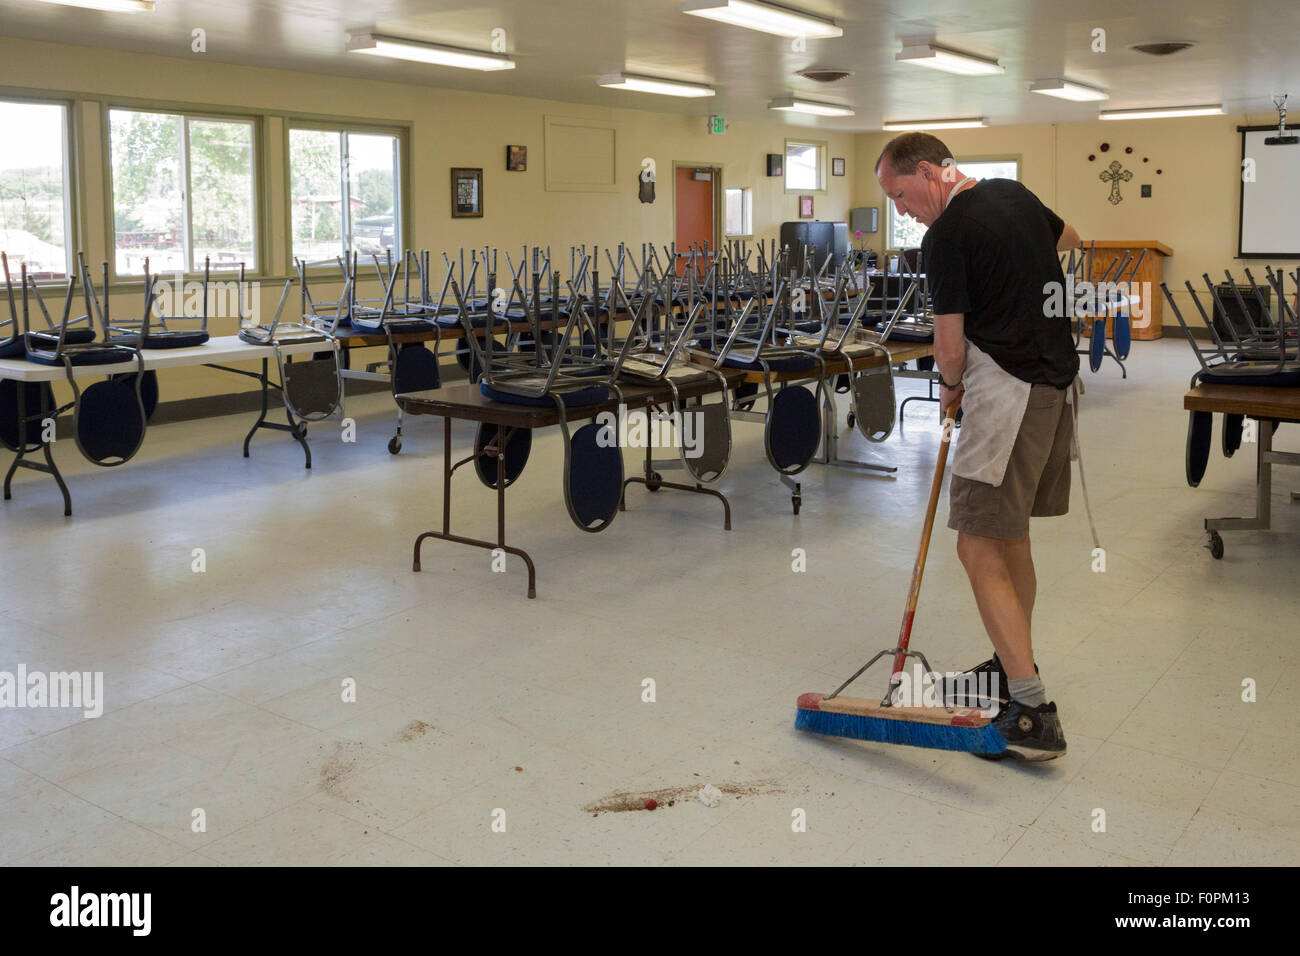 Wellington, Colorado - A resident sweeps the floor in the dining room at Harvest Farm, a addiction recovery facility. - Stock Image